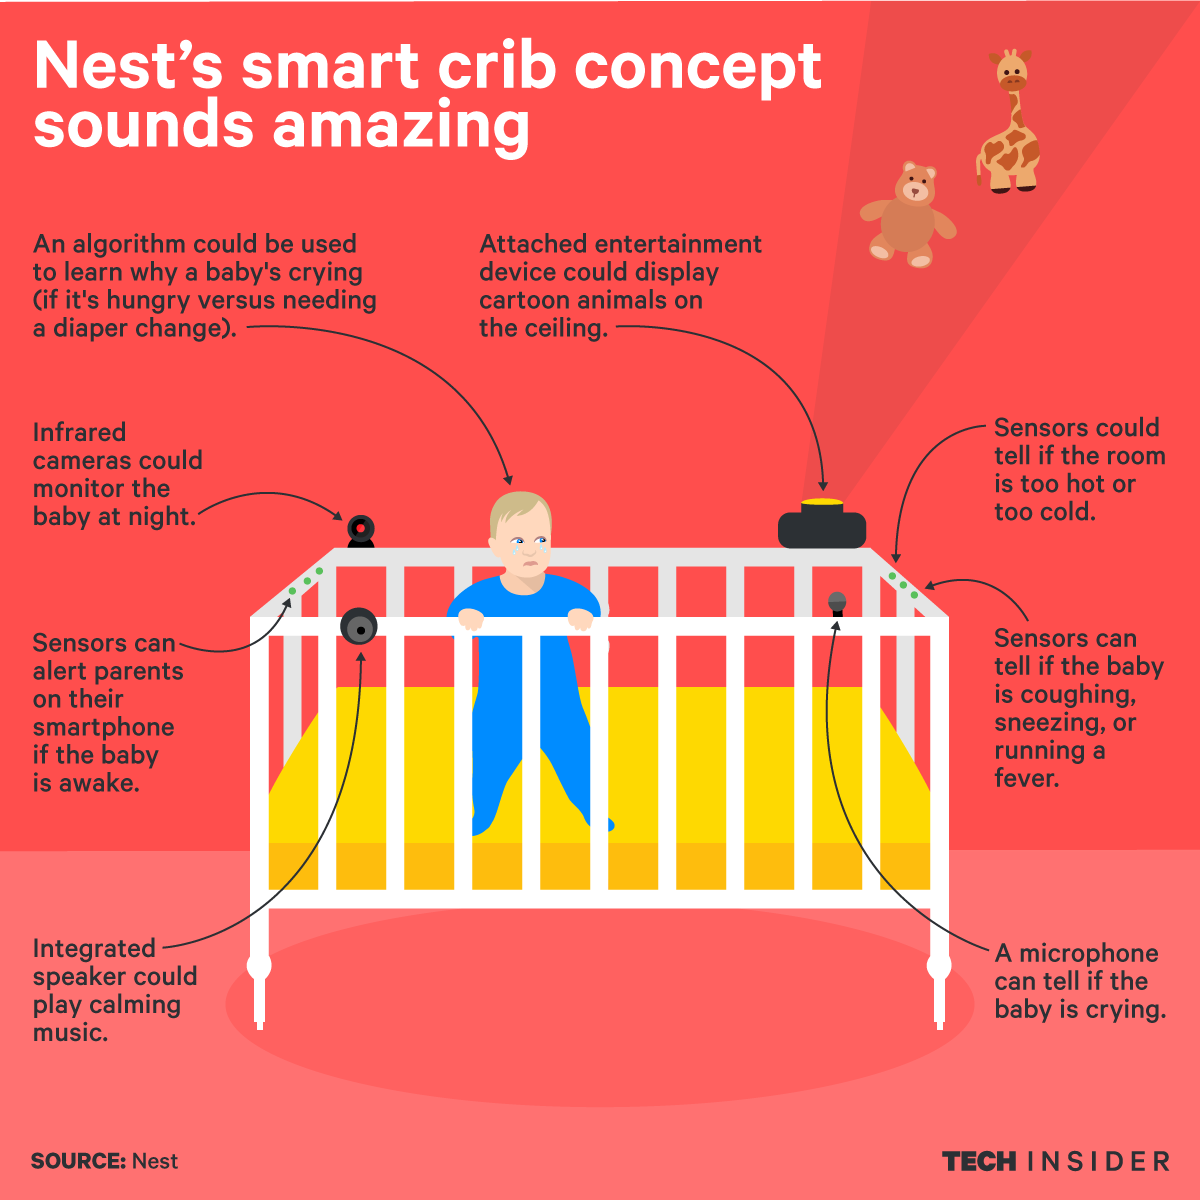 This new crib from Nest sounds amazing! It'll help you